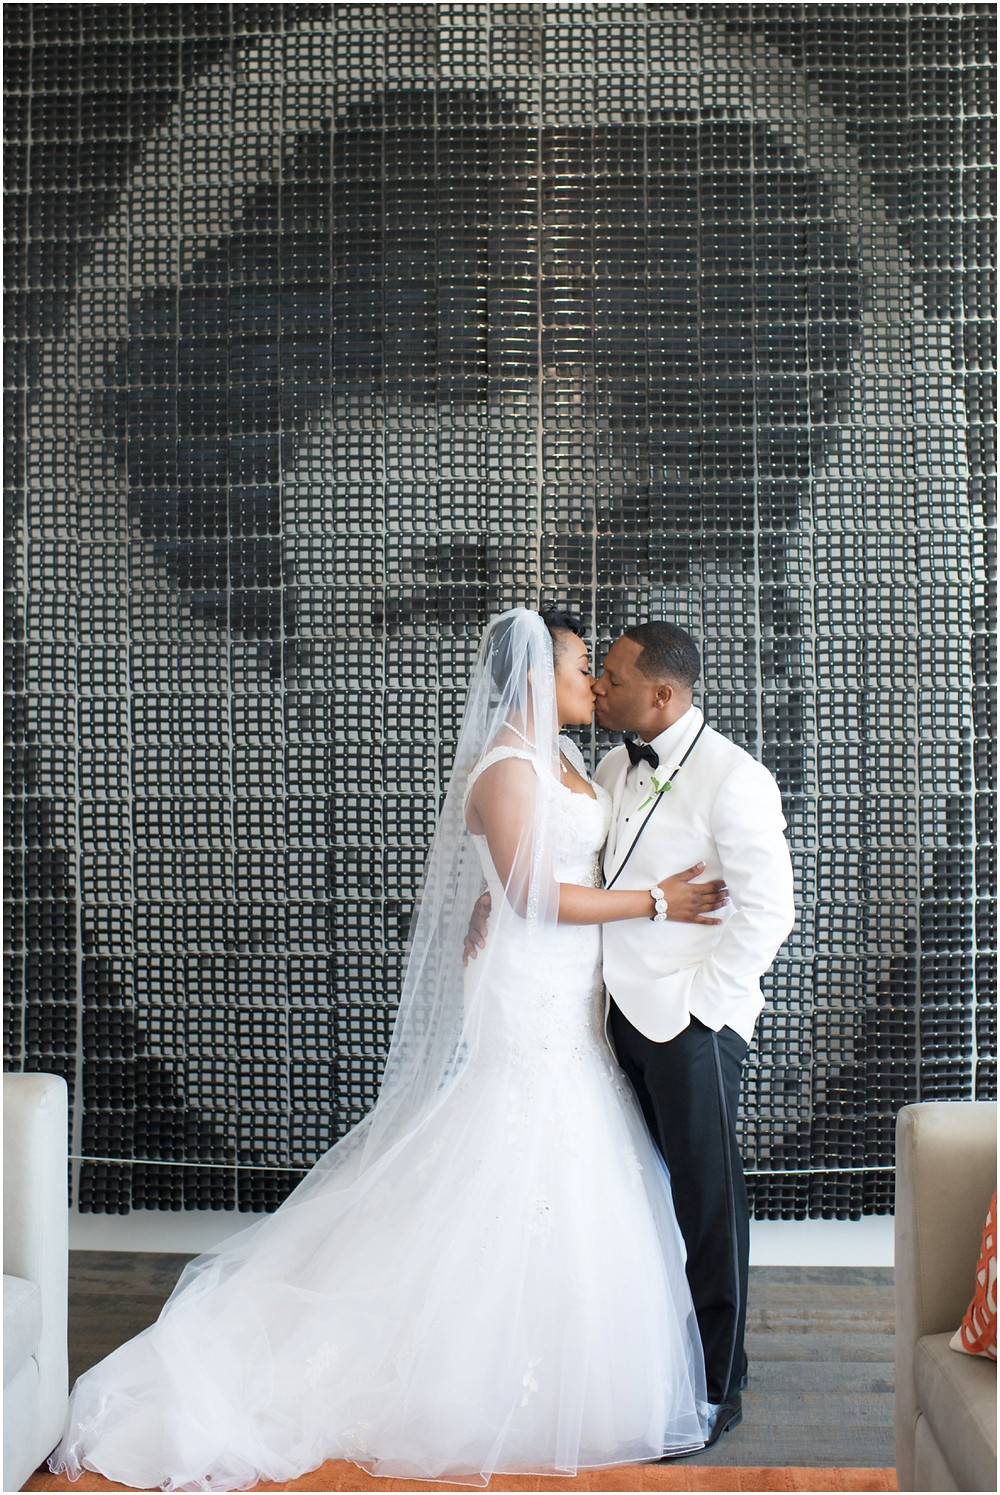 The Alexander Indianapolis wedding